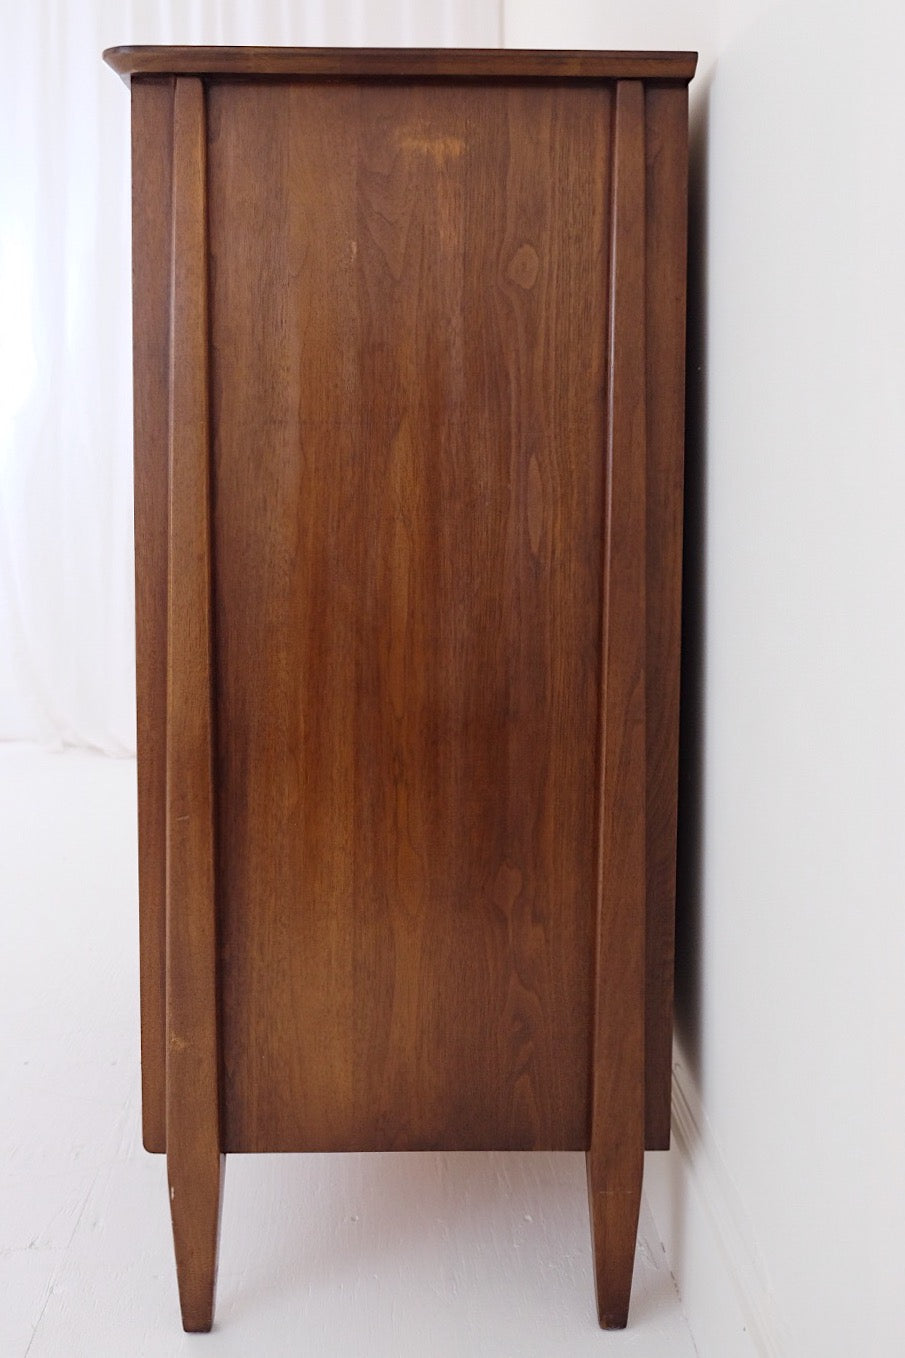 Solid American Walnut Mid Century Tall Dresser Carved Tapered Wooden Handles Bronze Hardware Six Drawers